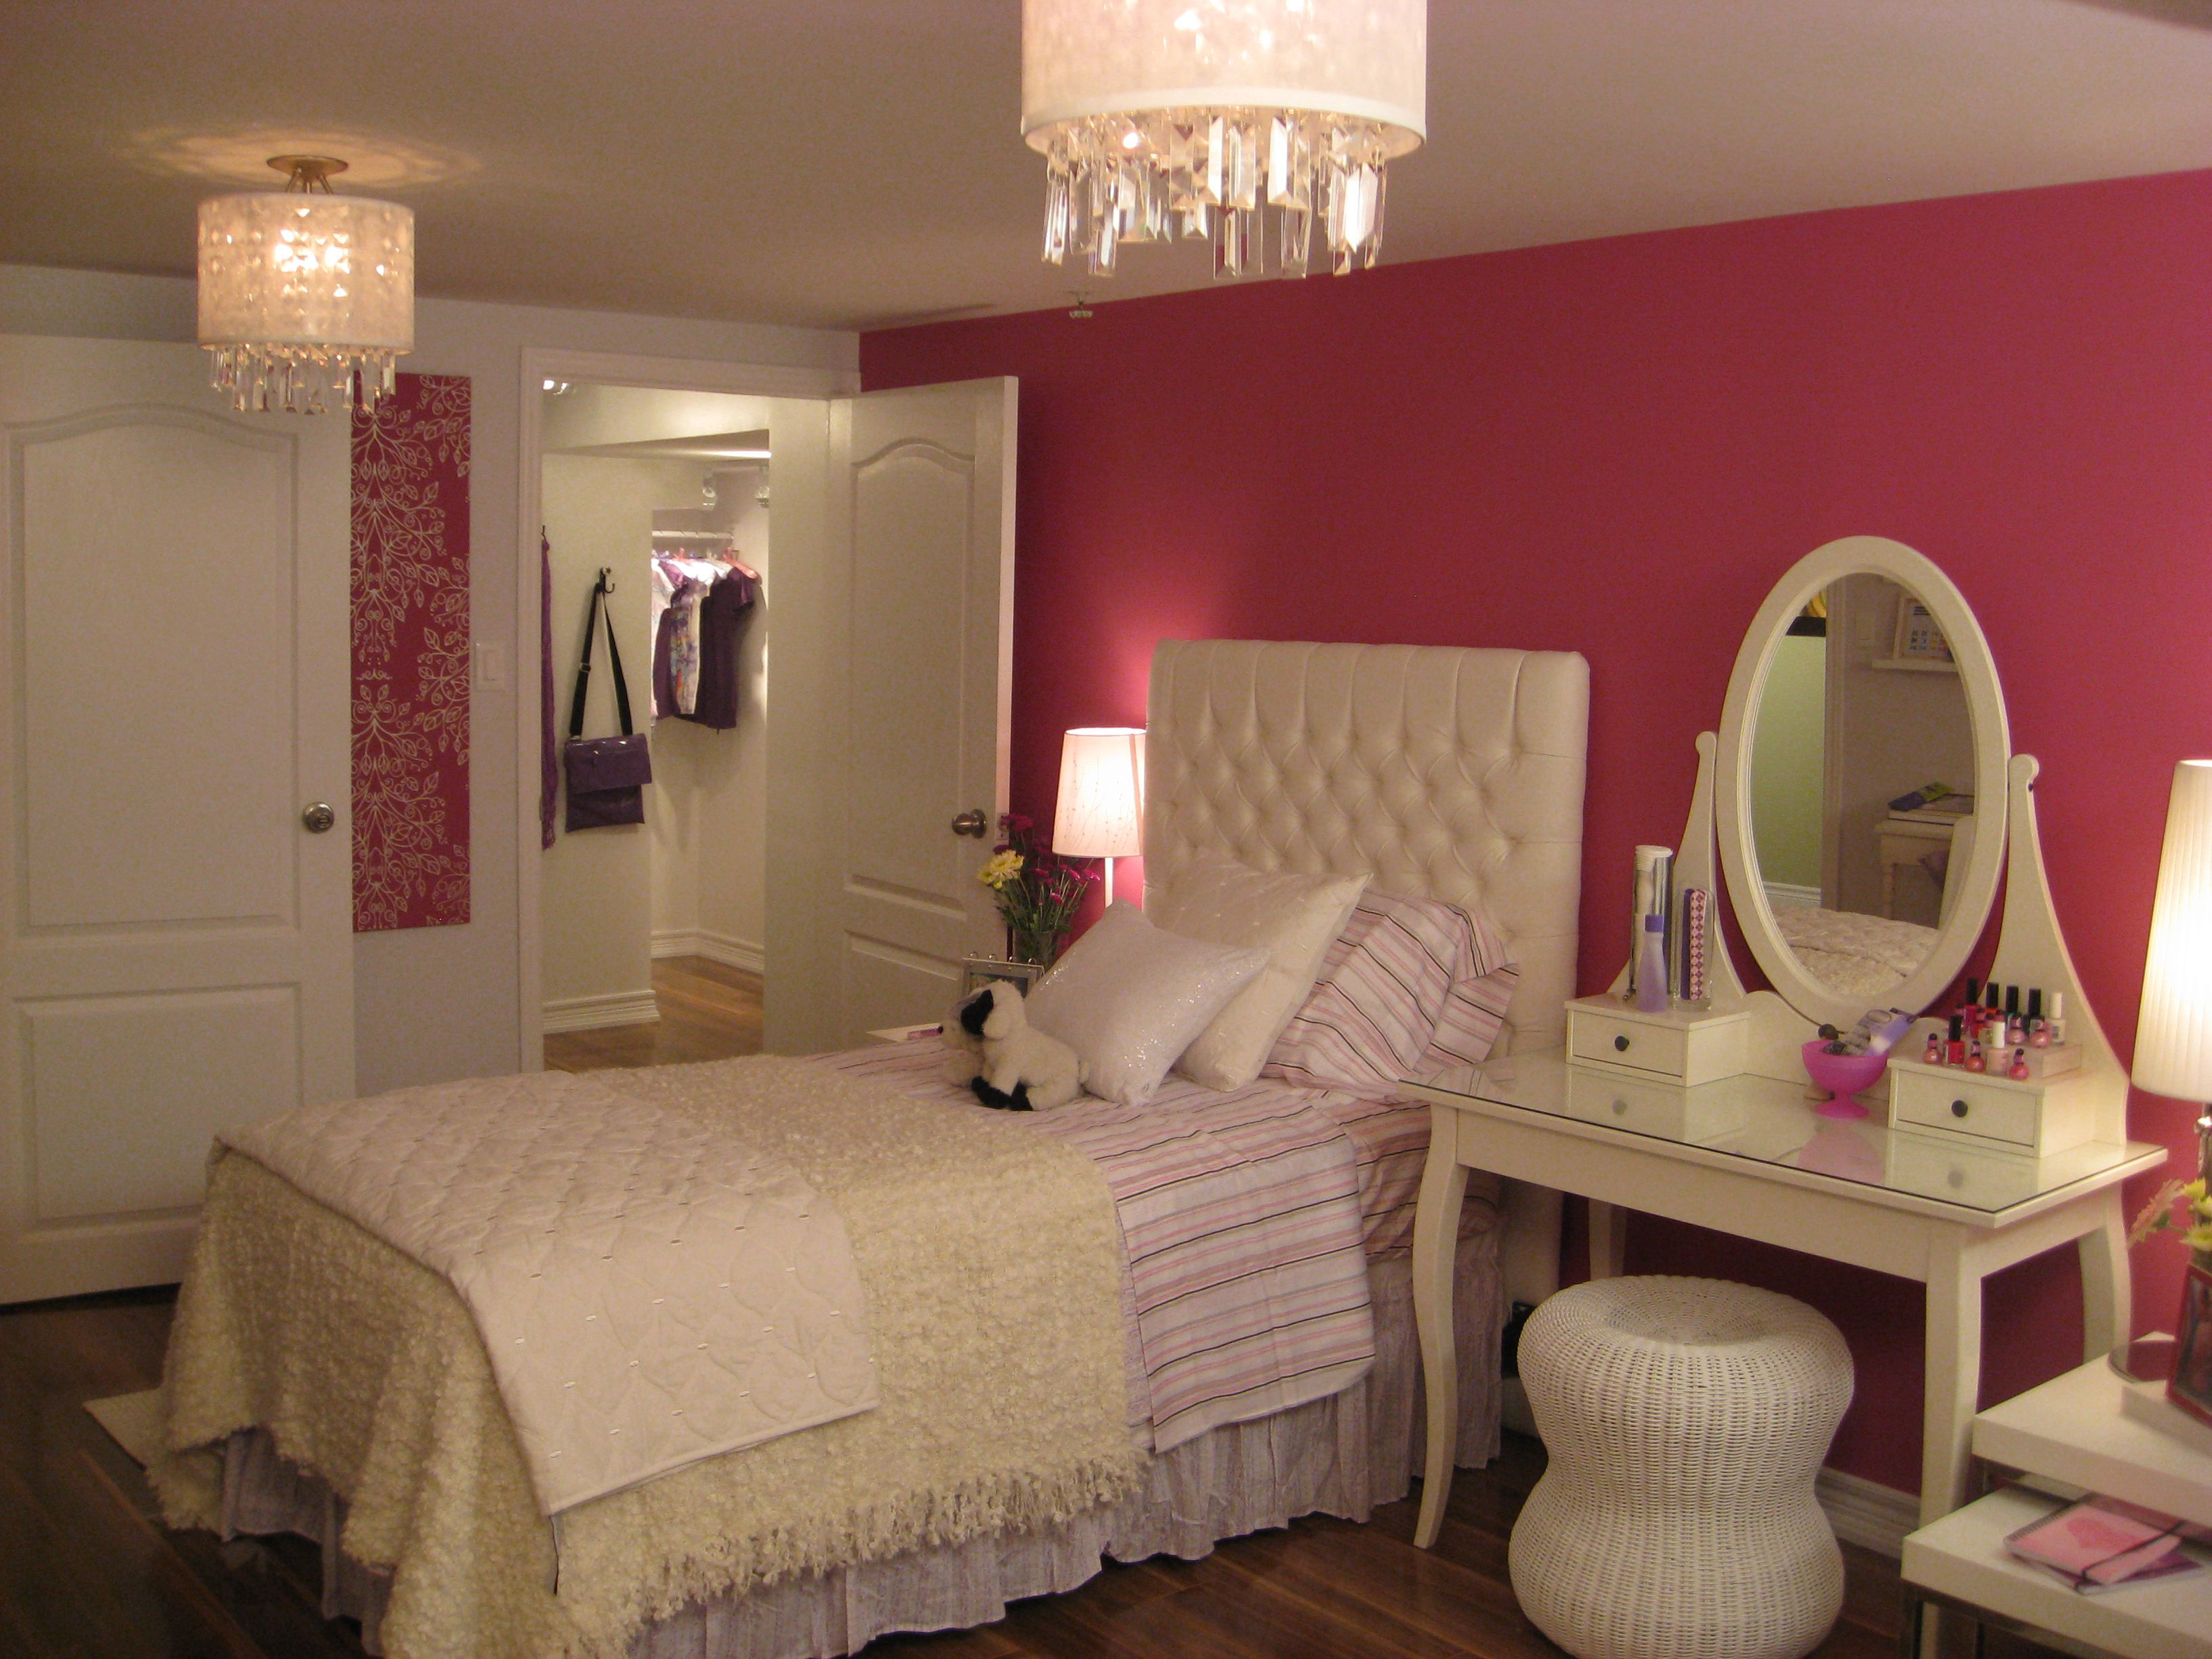 pretty bedroom decor using chandelier also cute bed beside table - Decorating A Basement Bedroom